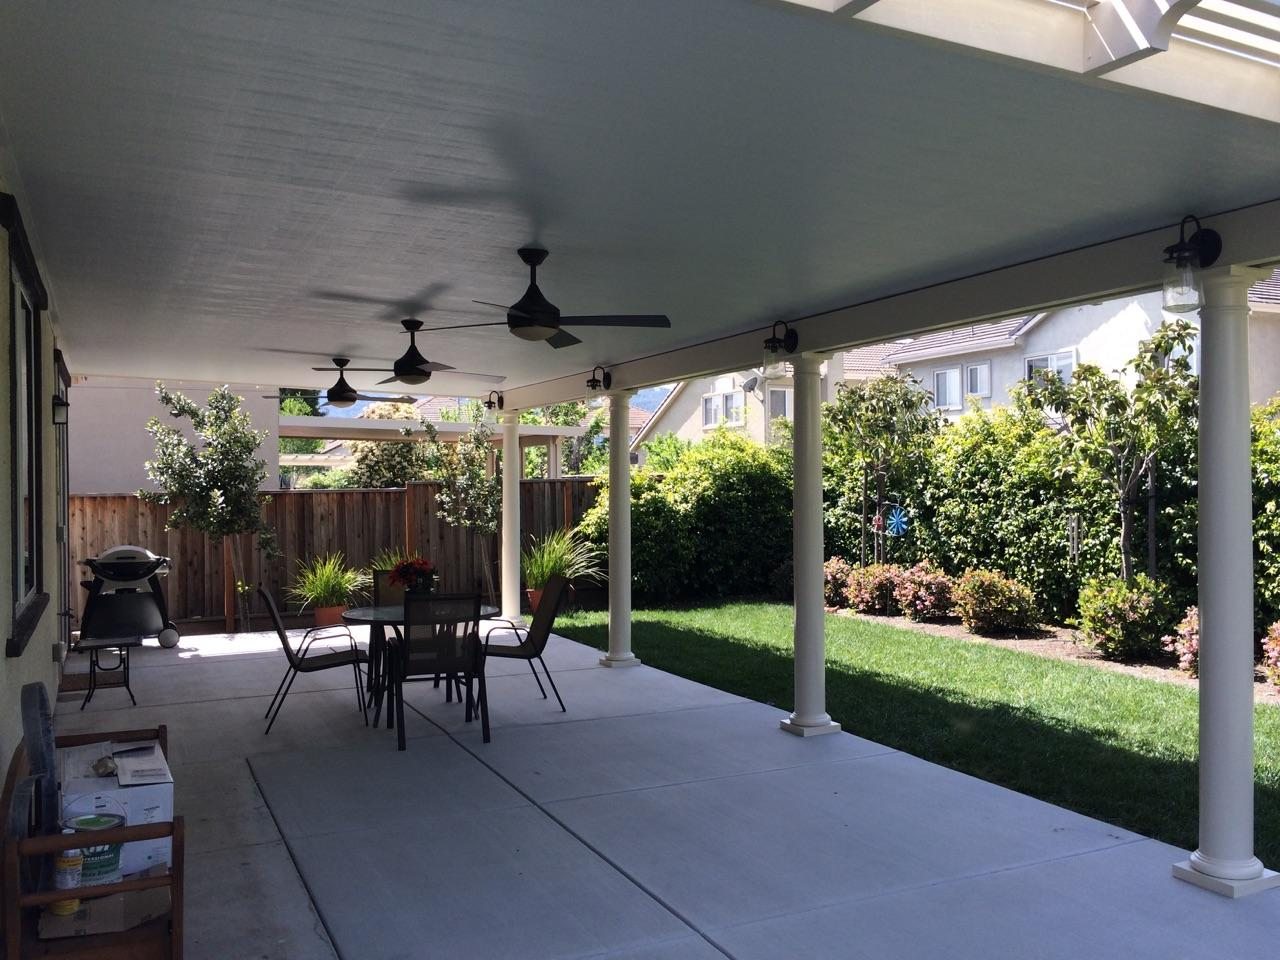 With The Addition Of Skylights To The Solid Patio Cover On His Clayton, CA  Home, We Are Able To Illuminate The Living Area To The Clientu0027s  Specifications ...